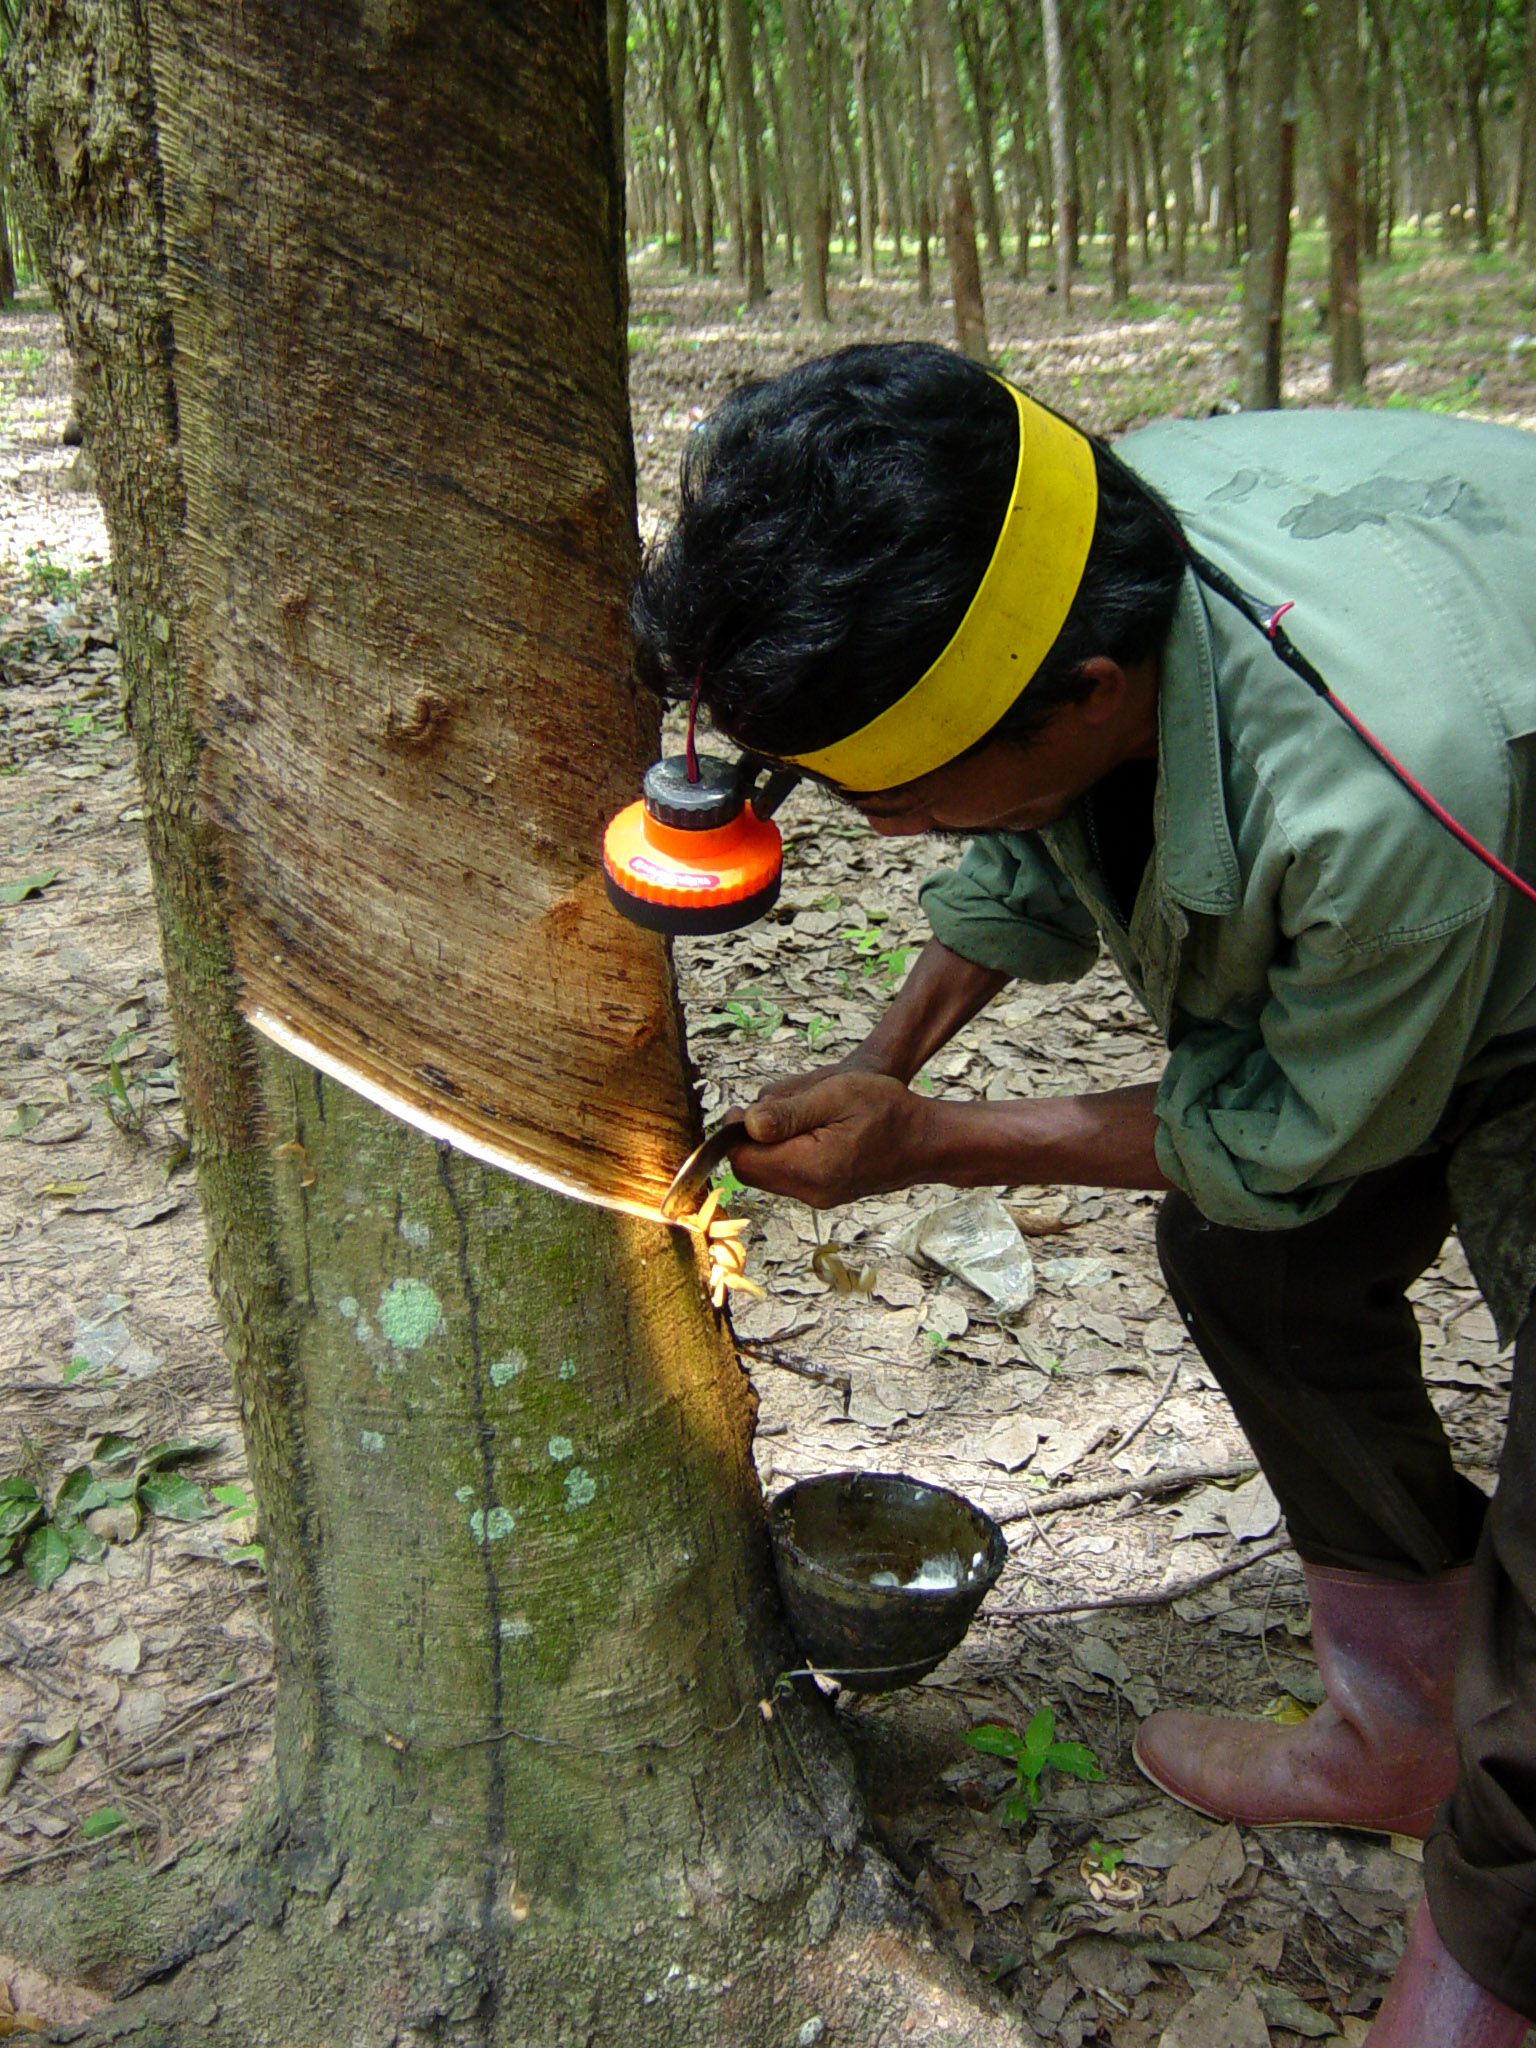 File Tapping A Rubber Tree In Thailand Jpg Wikimedia Commons